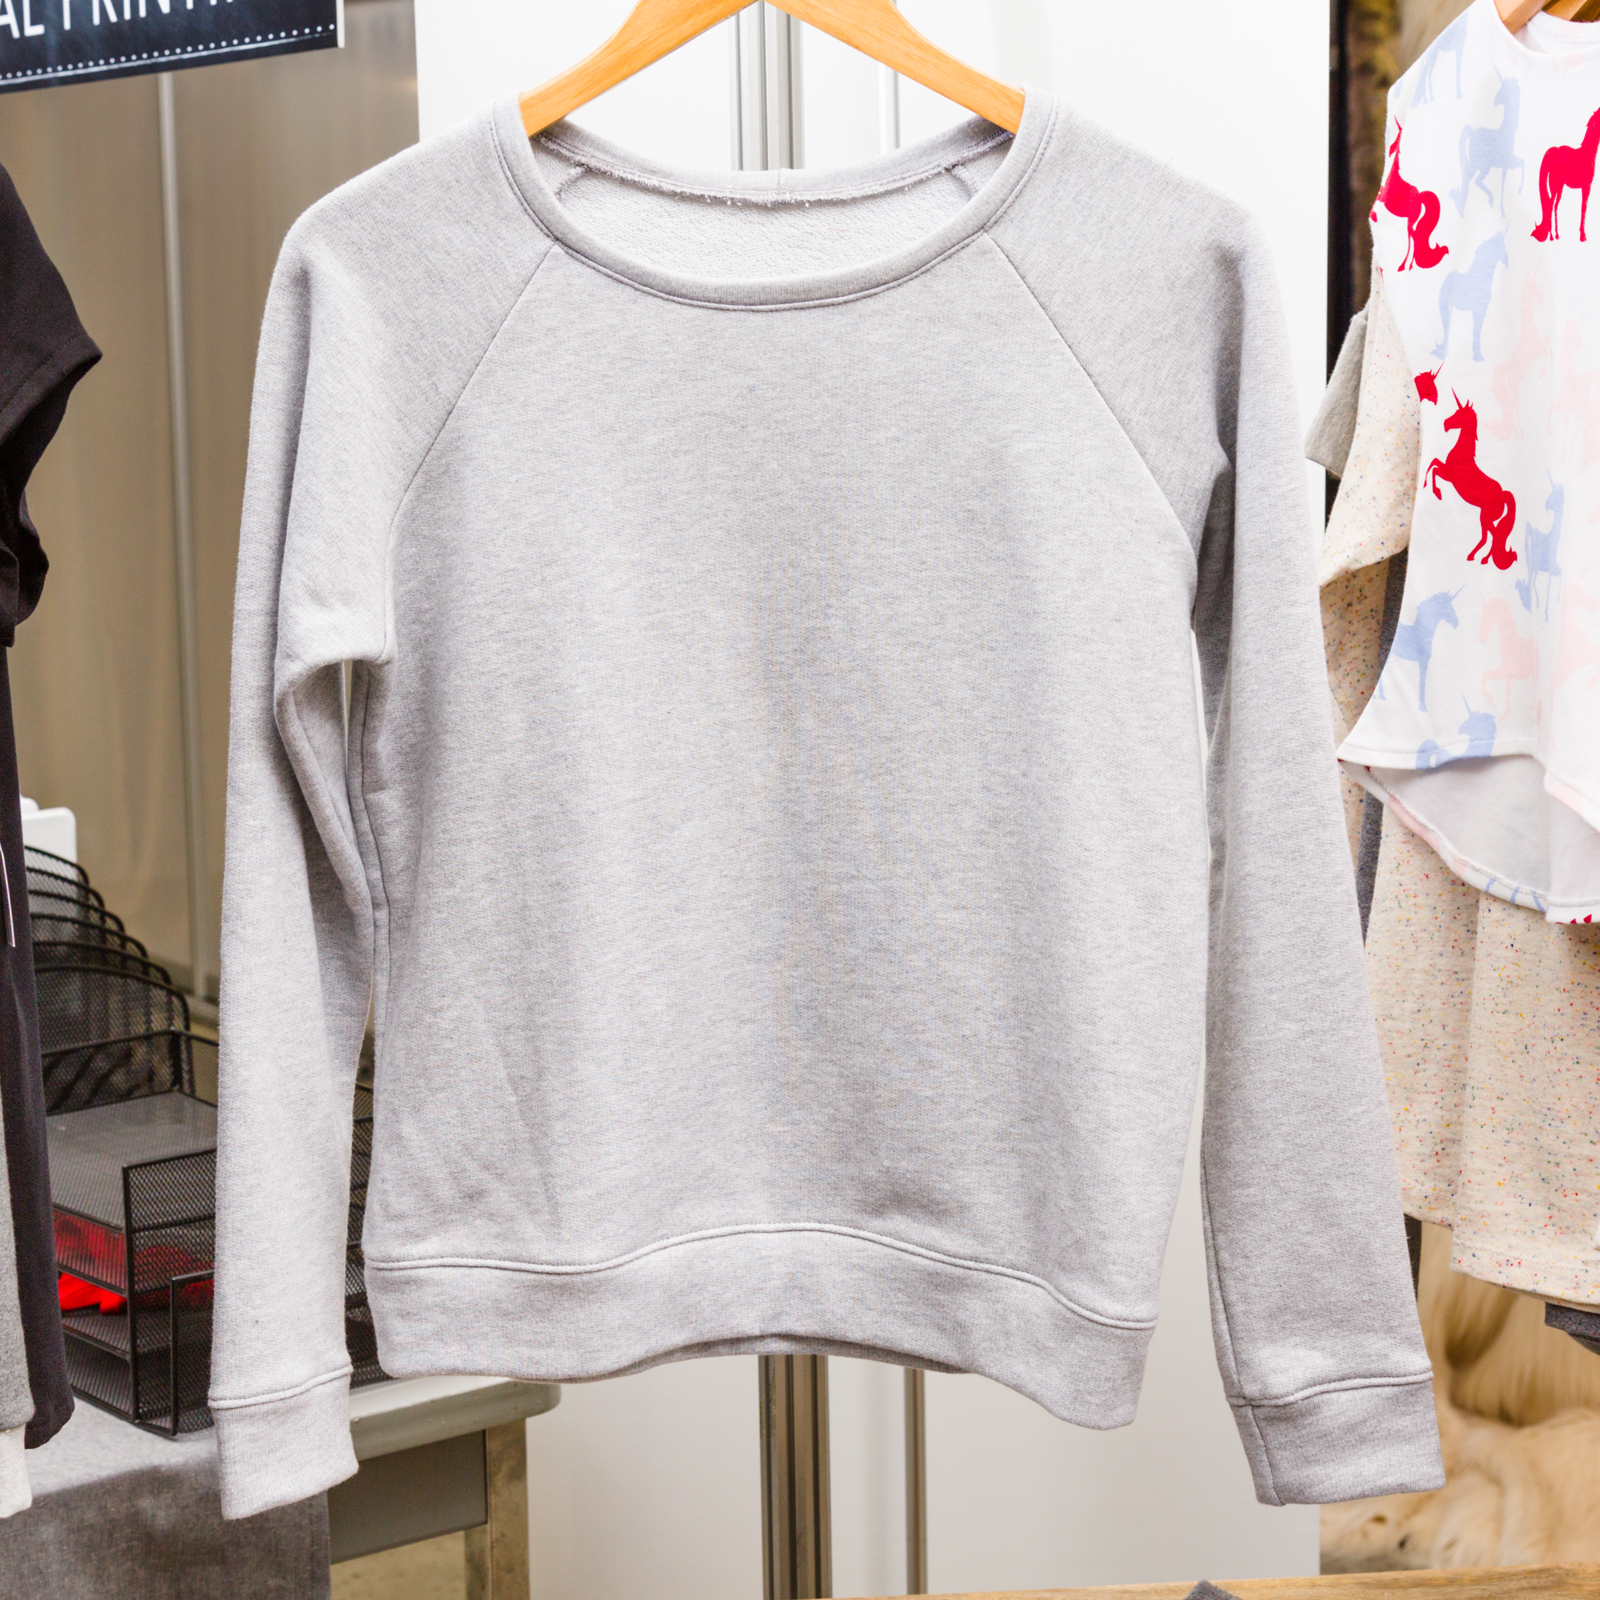 Linden   Sweatshirt   designed by   Grainline Studio ,  made by Knitty Bitties, featuring   French Terry Light Grey